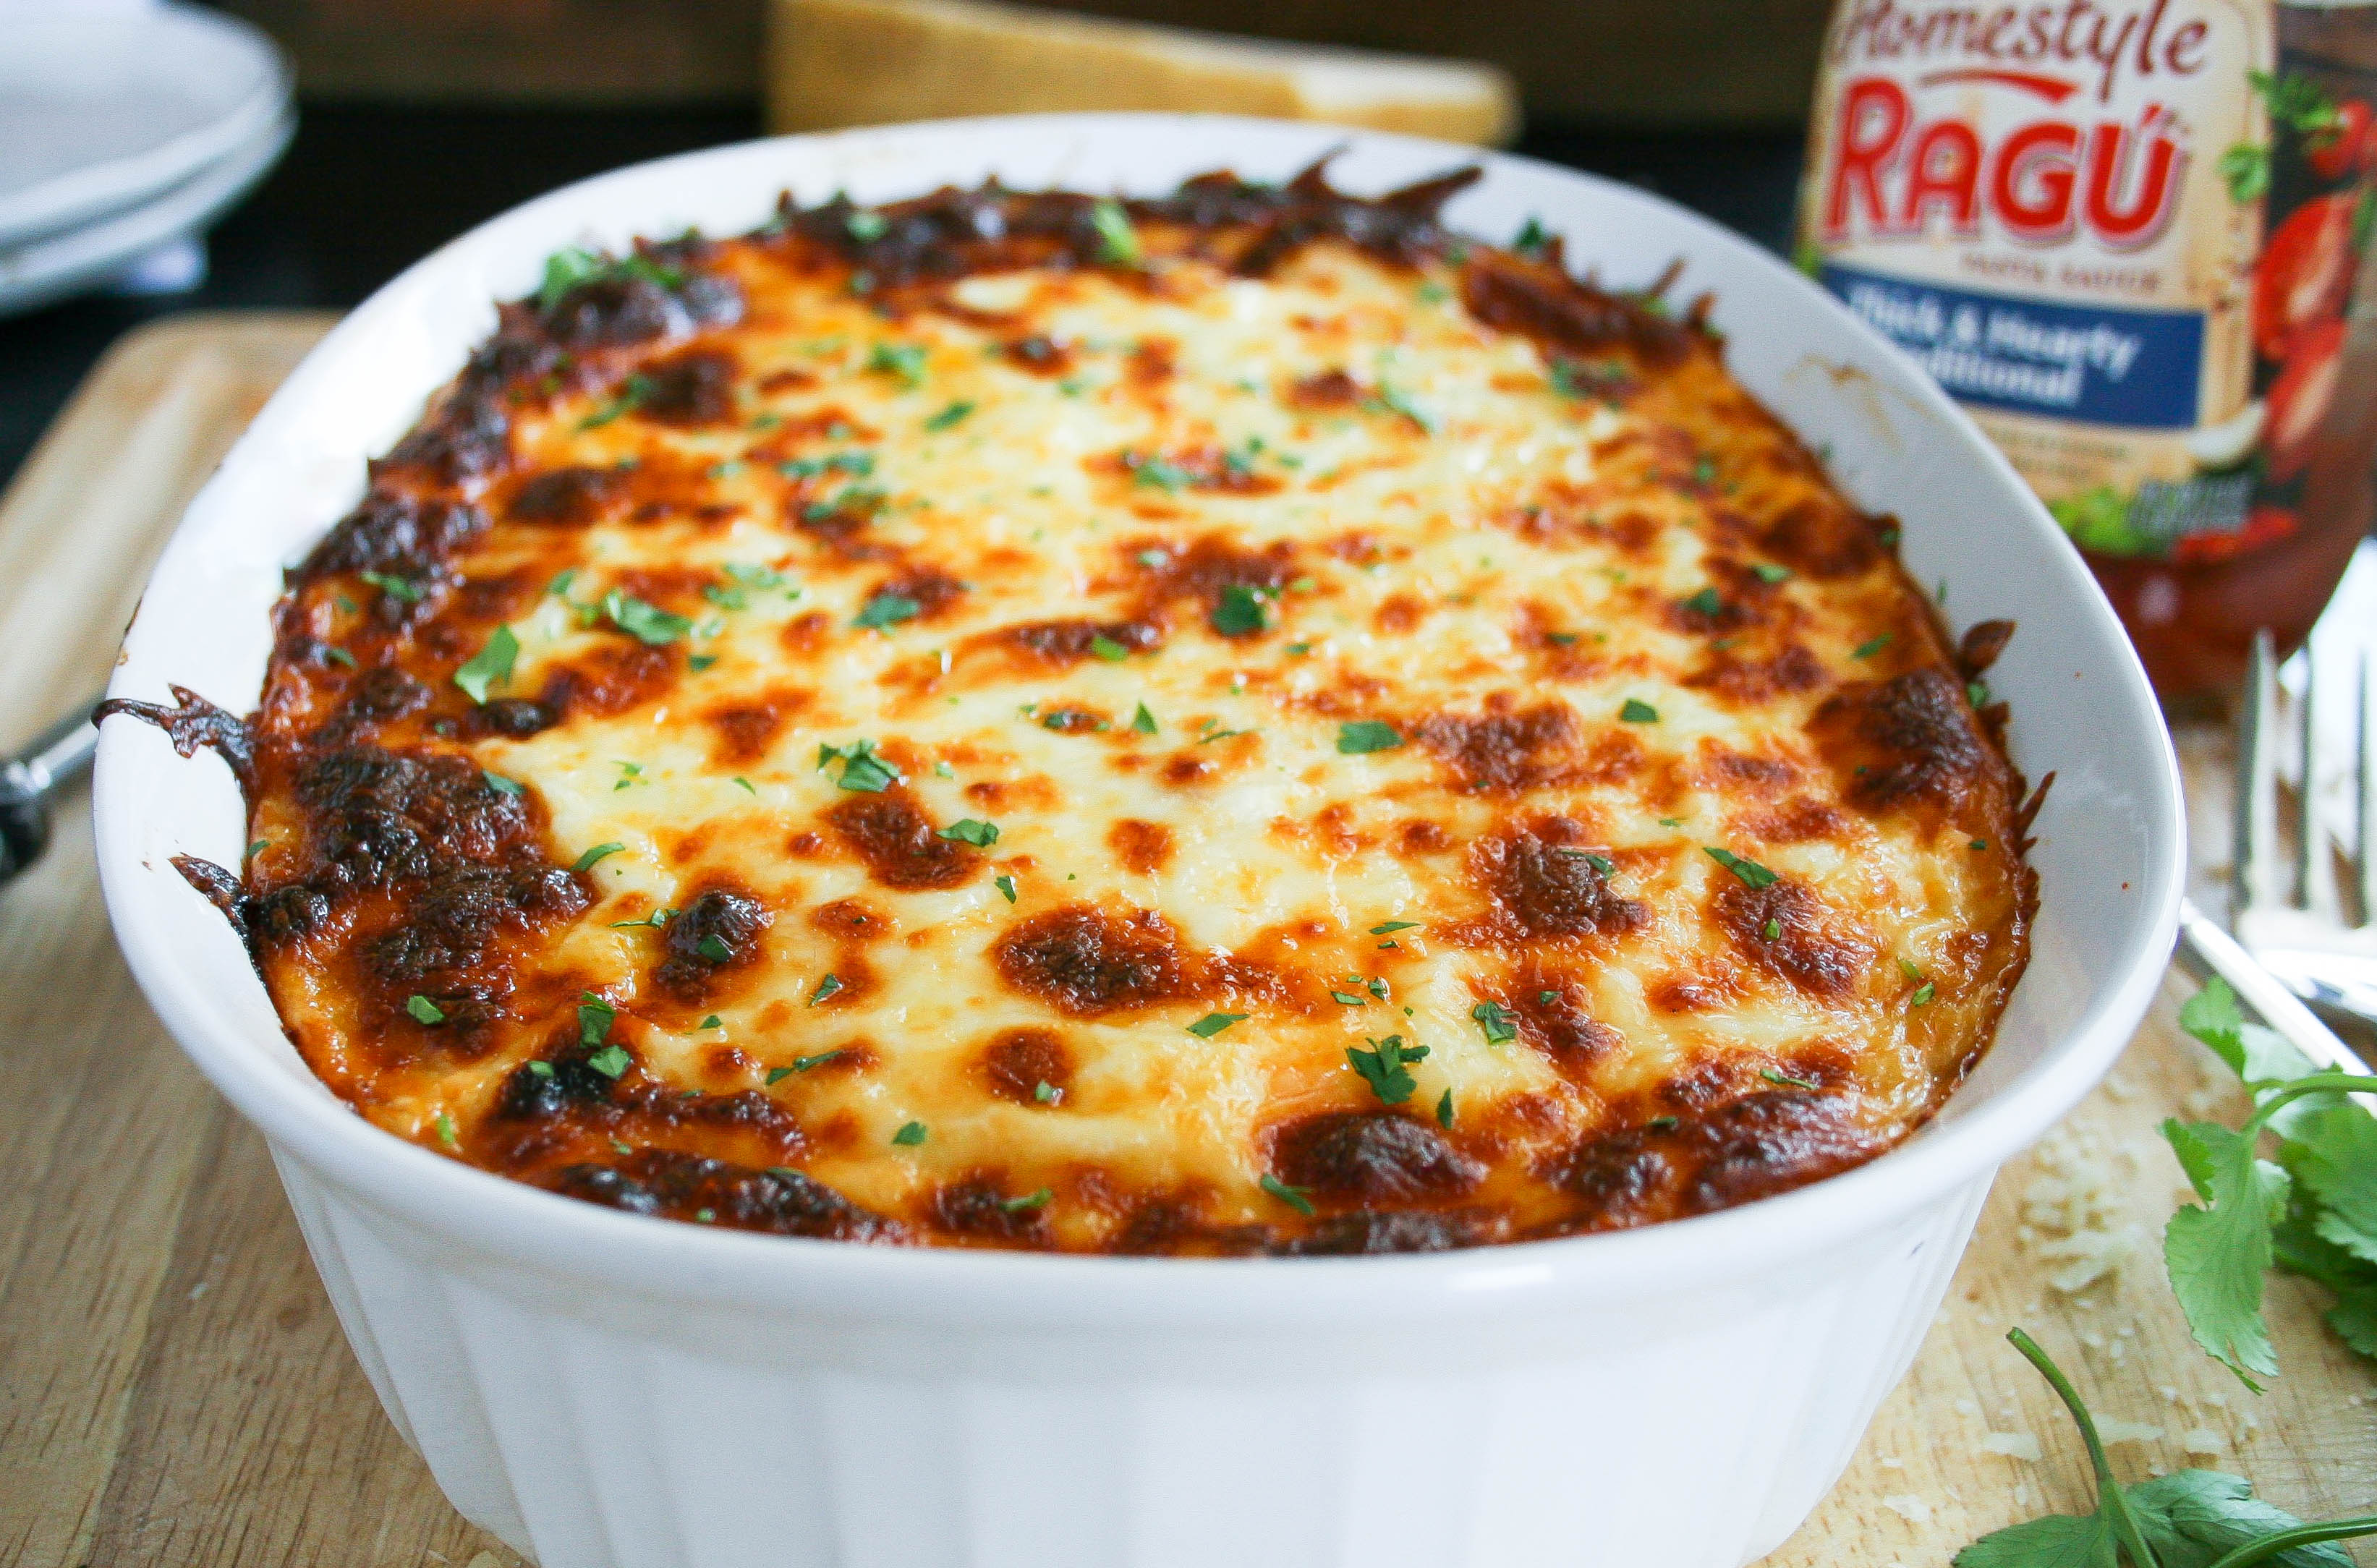 favorite pasta bake combines hearty tomato sauce, hot italian sausage, and ground beef with layers of creamy, cheesy sauce! this pasta bake is topped with mozzarella cheese and baked to perfection. and instant family favorite! | a flavor journal